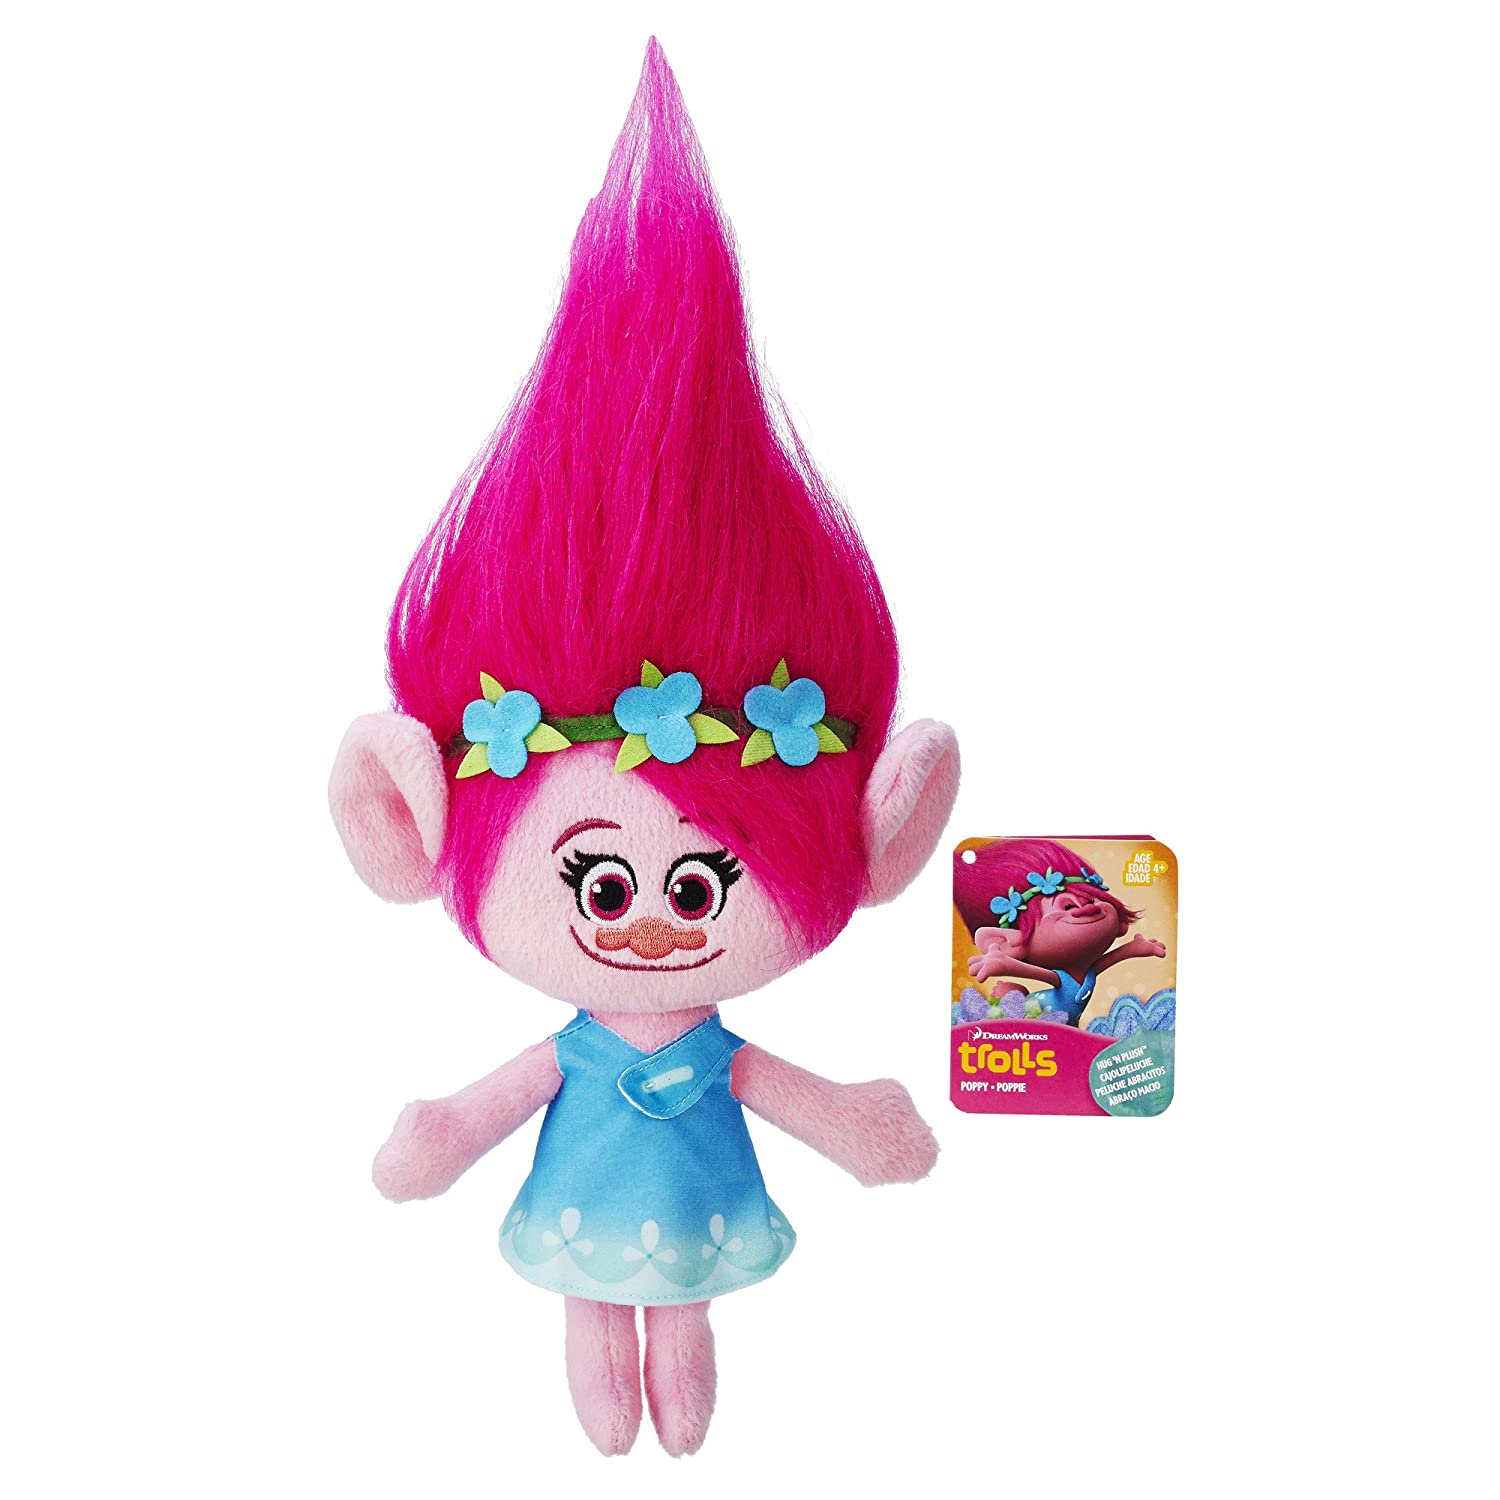 DreamWorks Trolls Poppy Hug 'N Plush Doll Hasbro B7614AS0